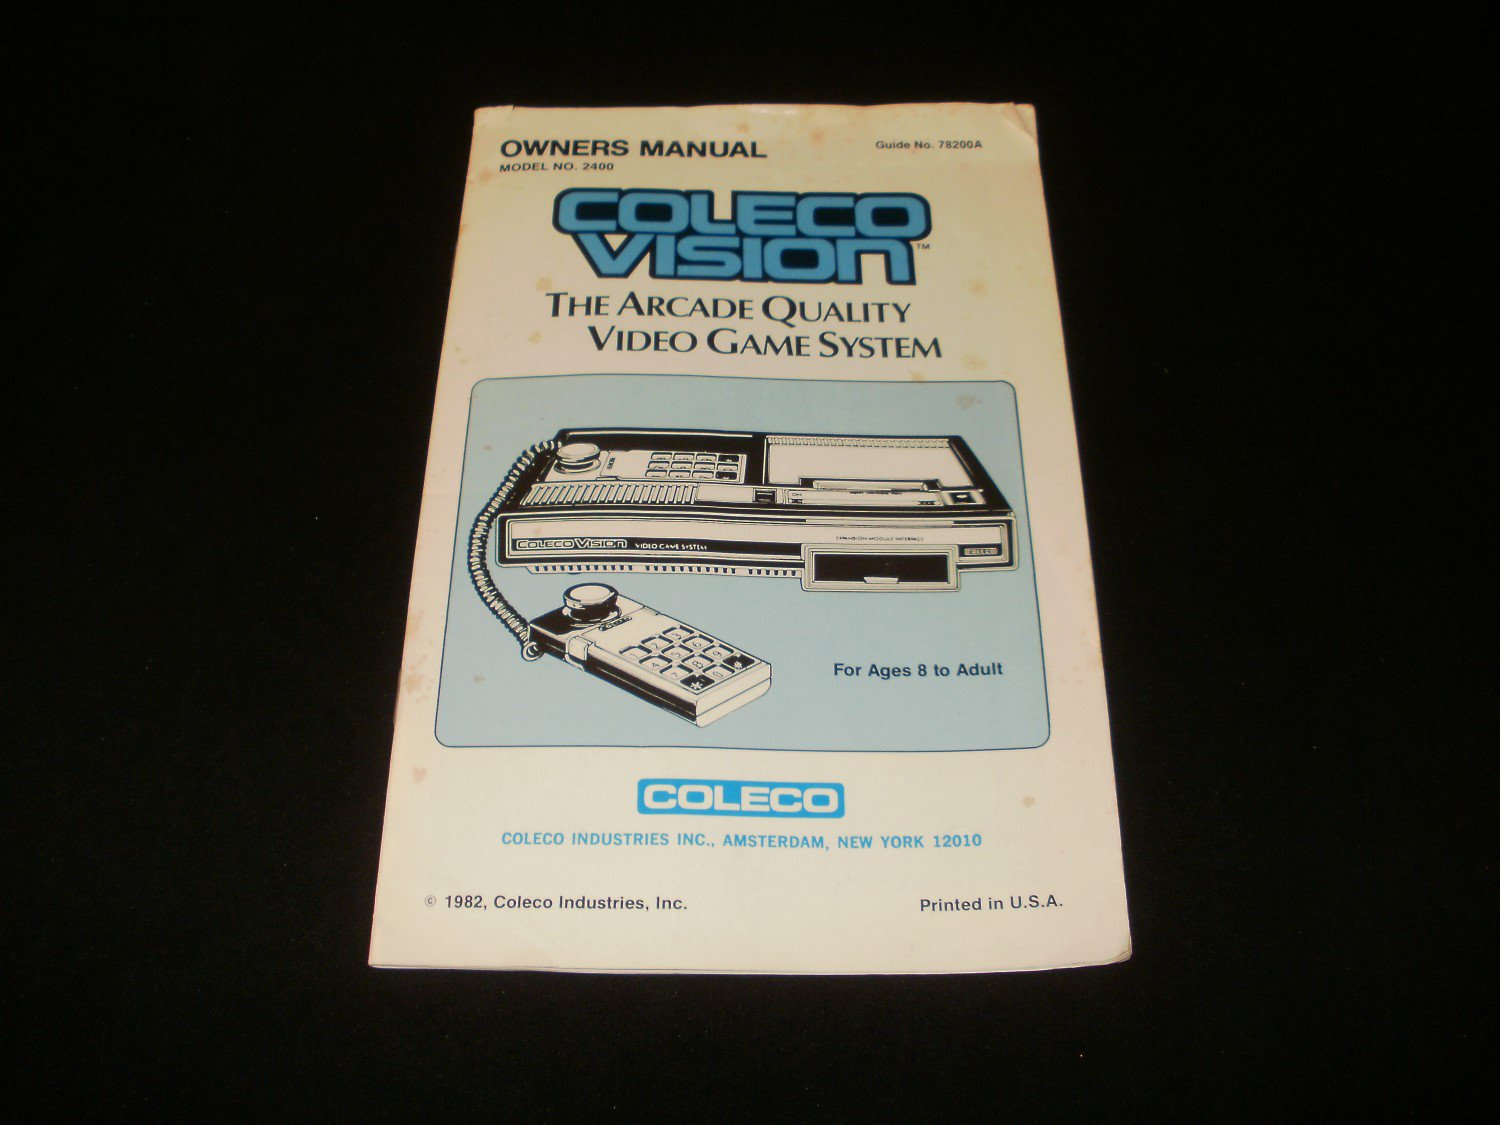 Colecovision Owner's Manual - ColecoVision - 1982 Manual Only